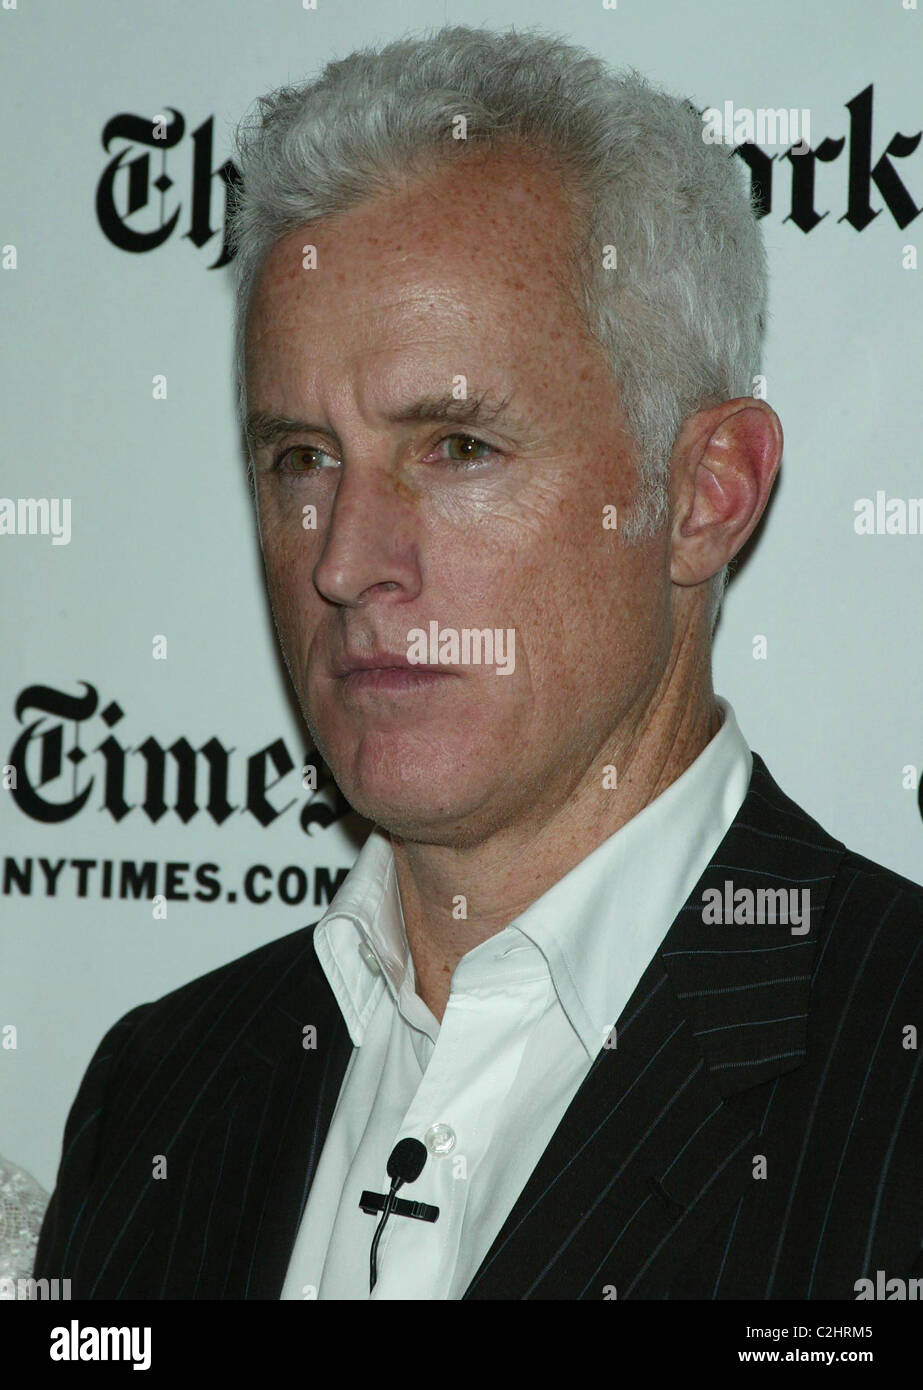 John Slattery The New York Times Arts & Leisure Week: